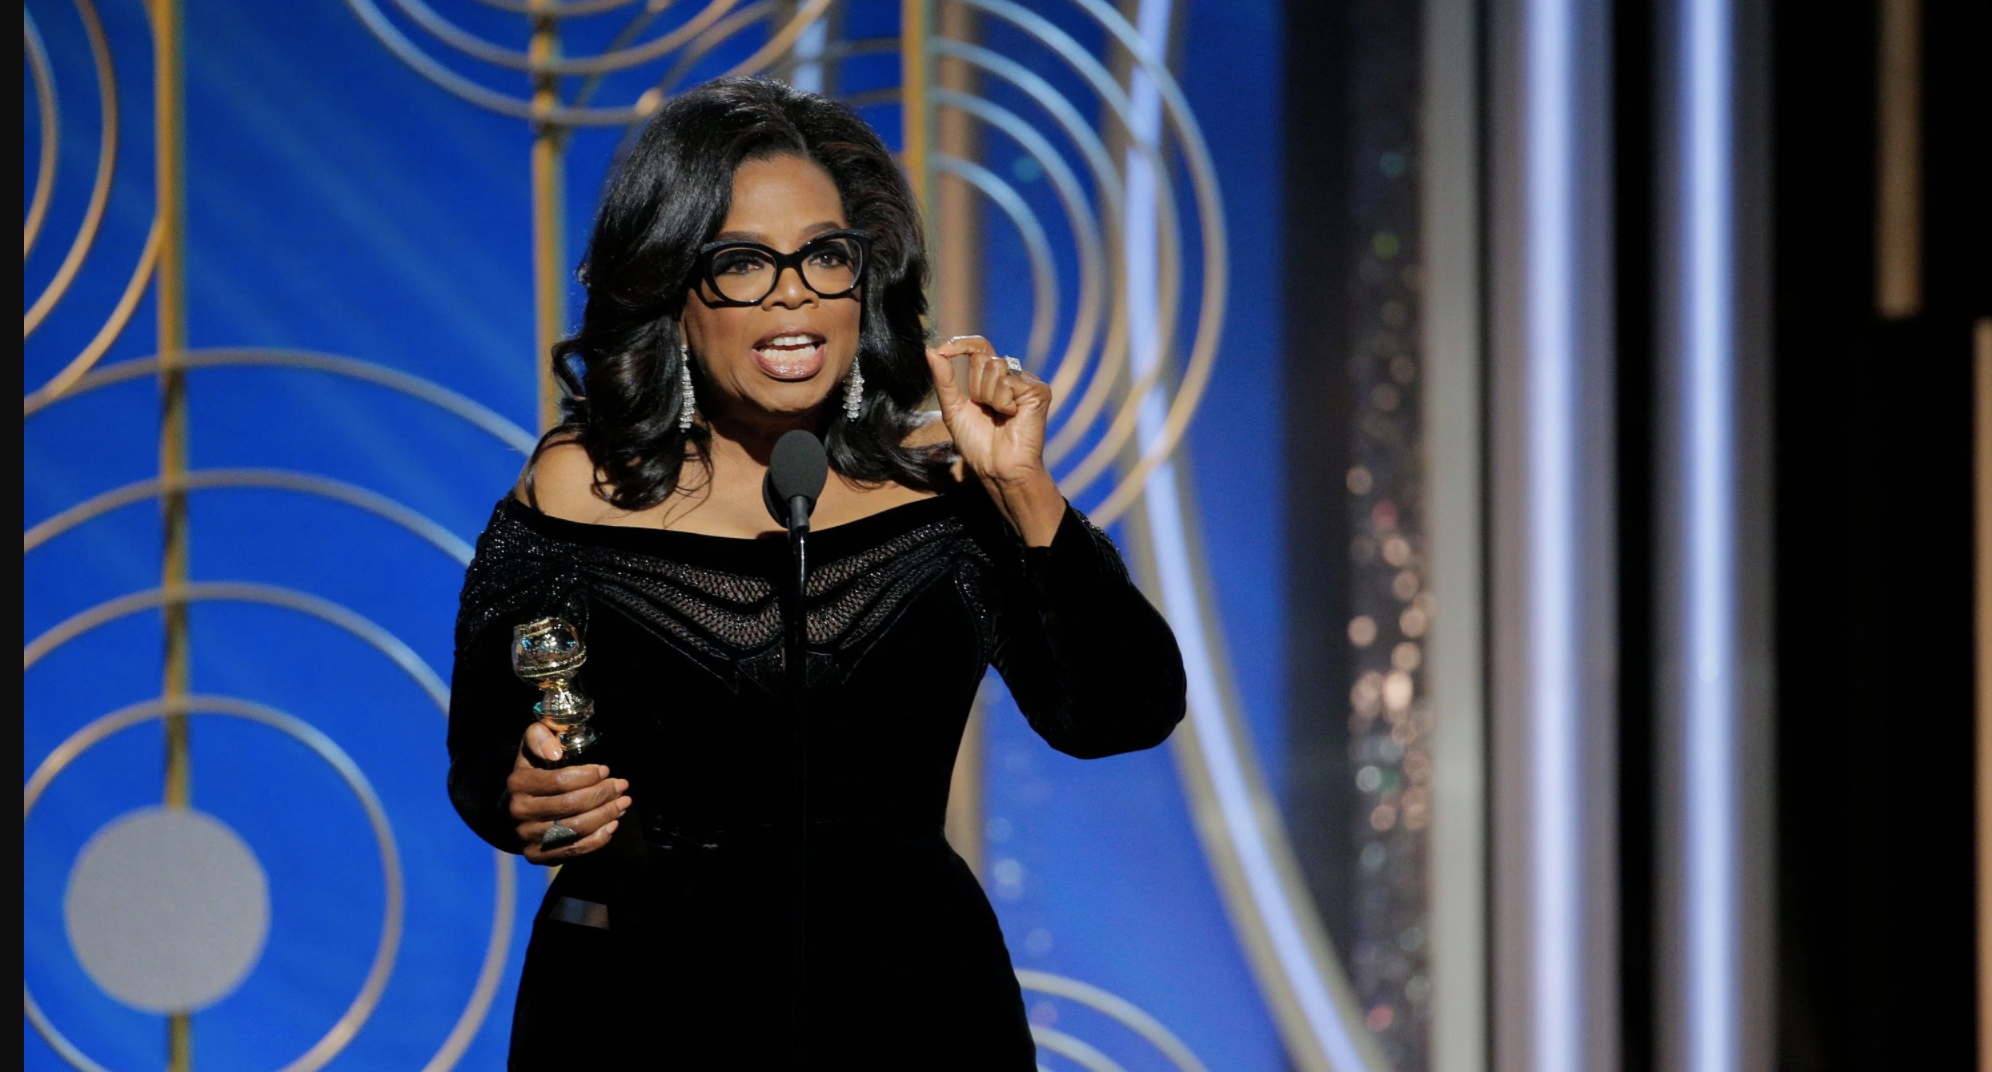 Oprah's Golden Globes Speech Preaches a Feminist Mantra and Here's Why